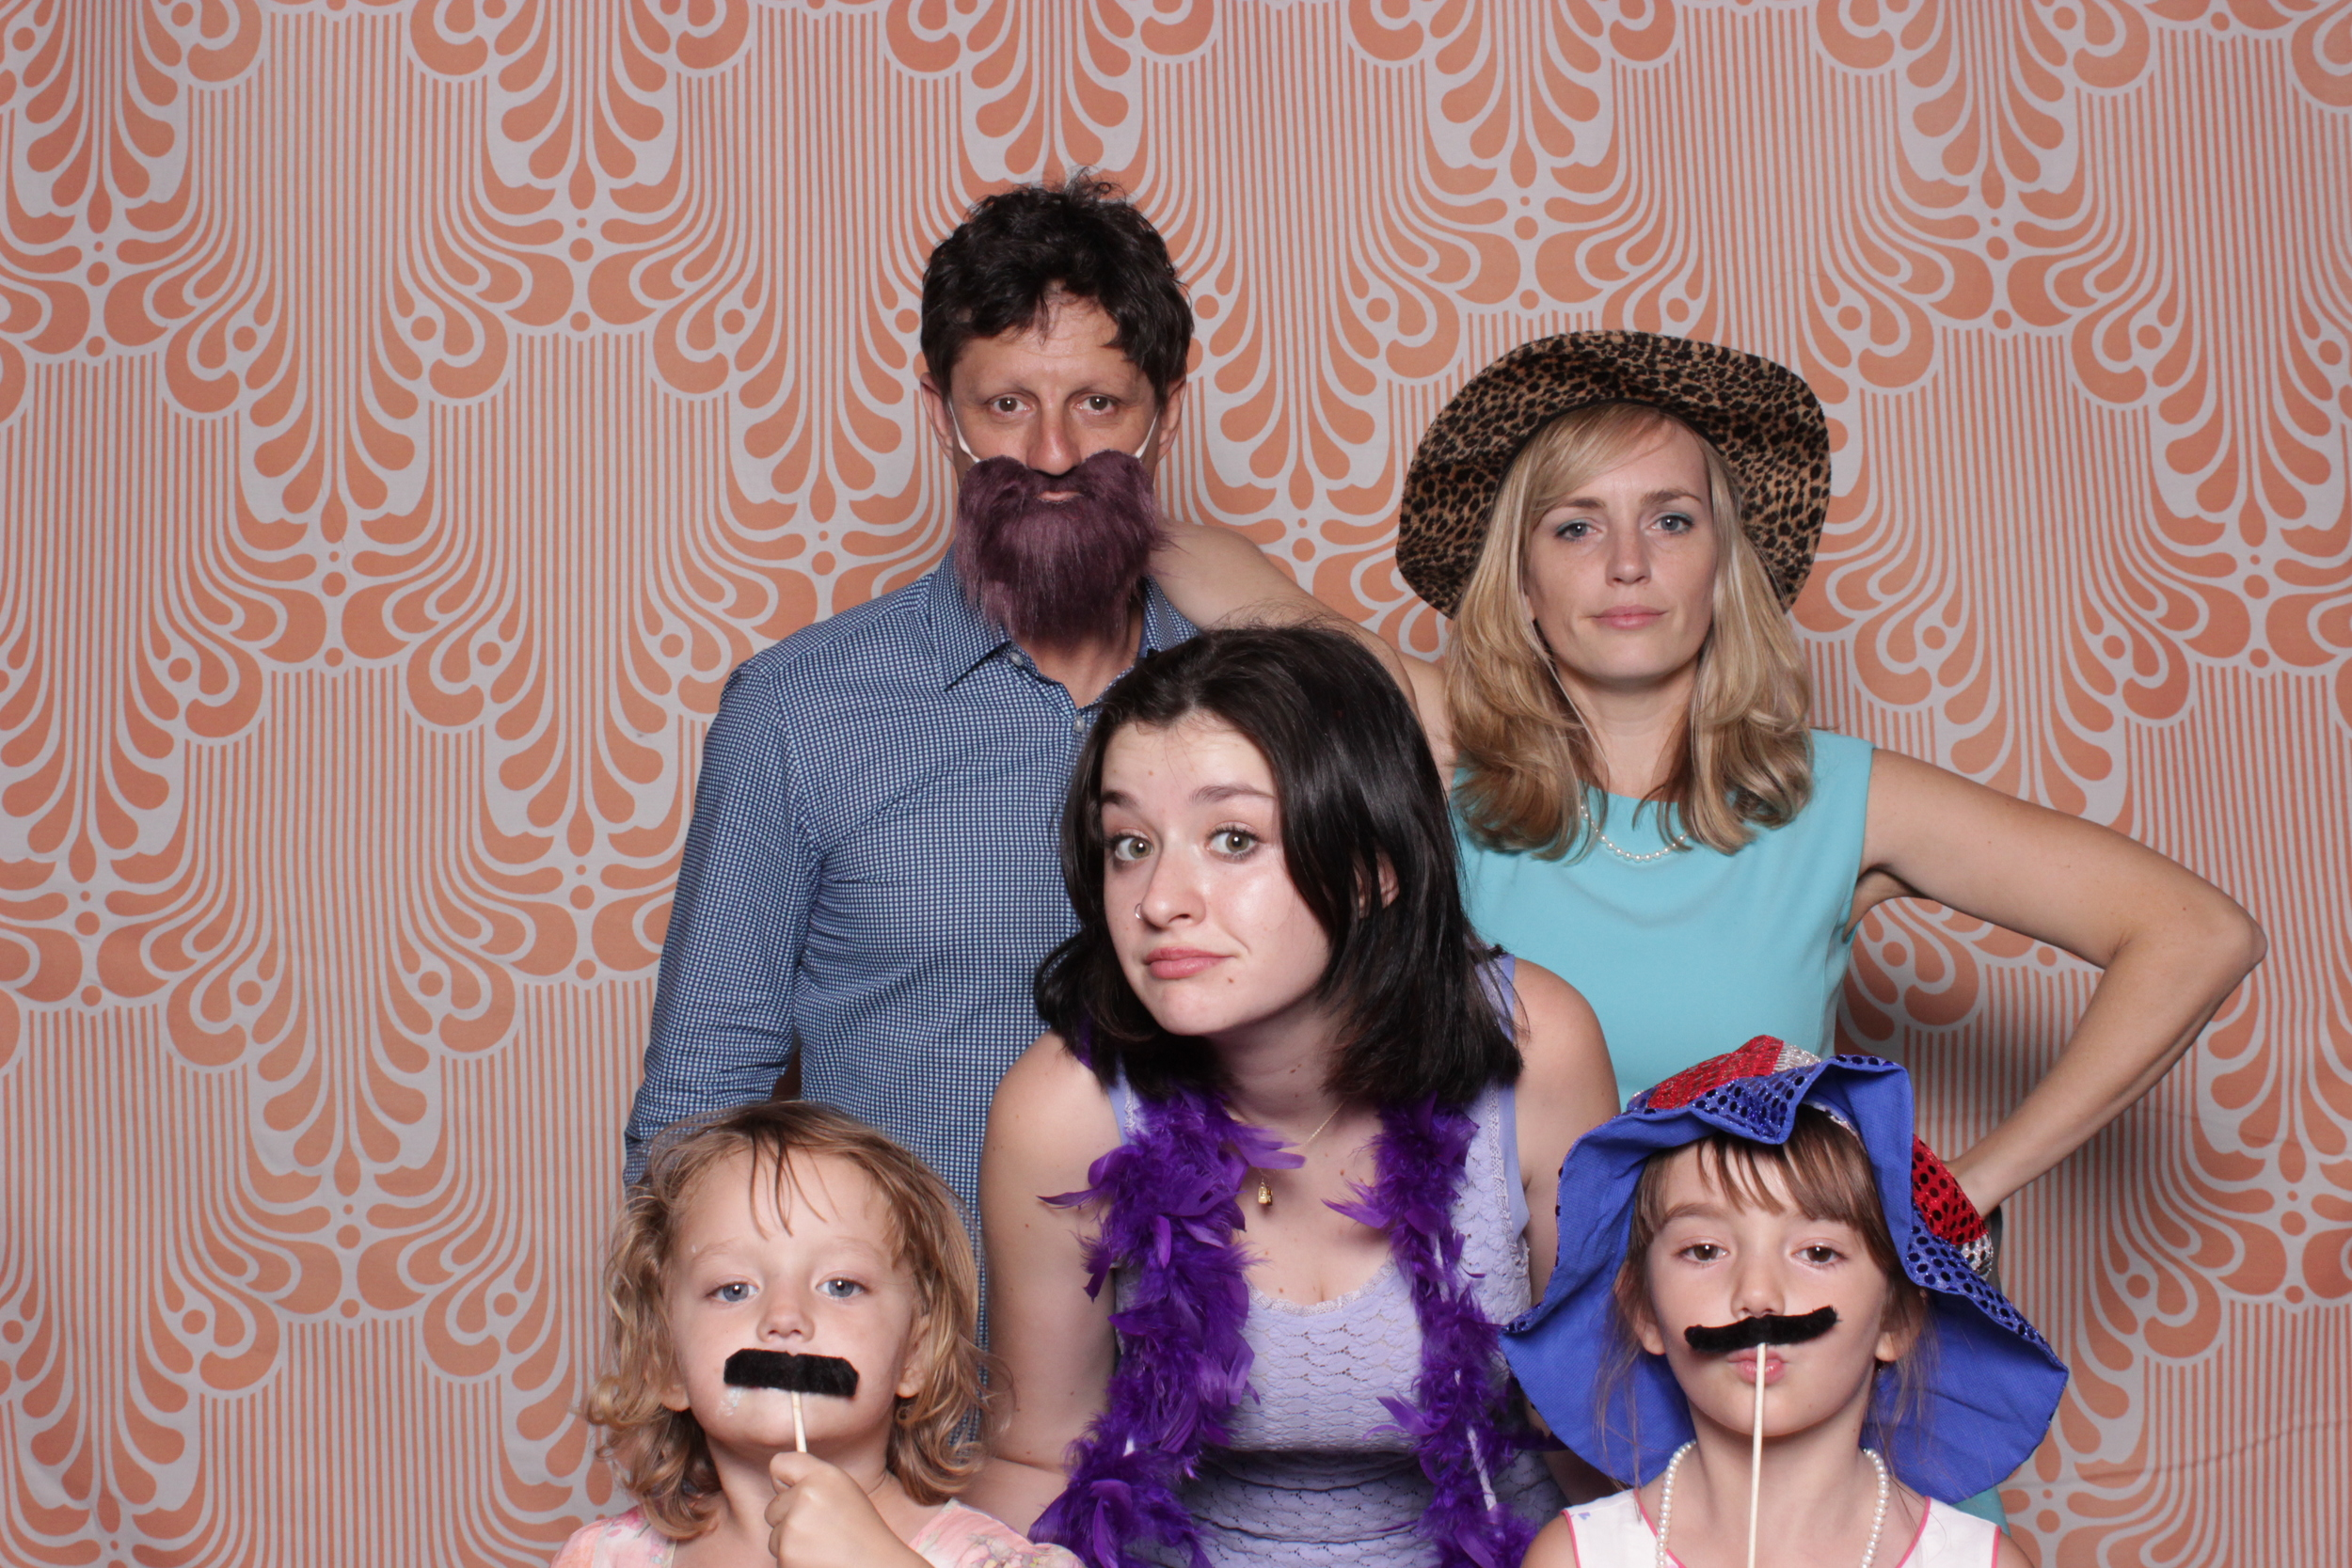 chico-photo-booth-rental-family-group-shot